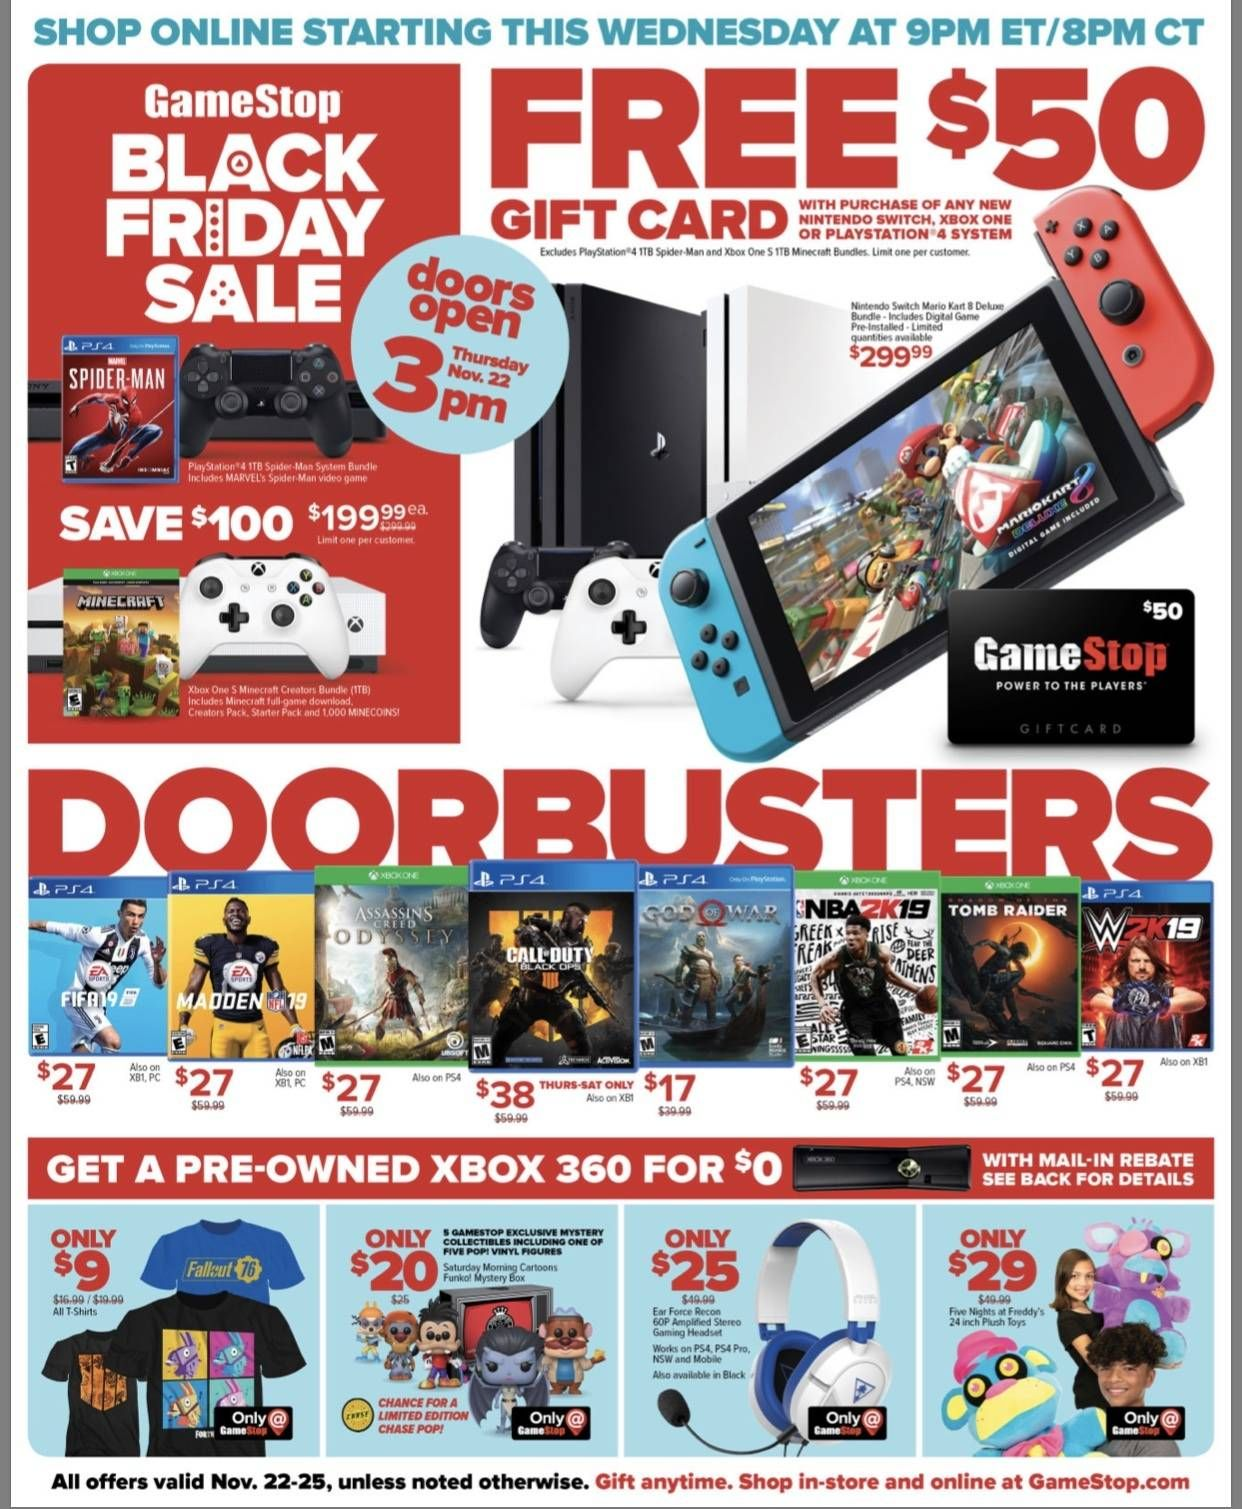 Ps4 Pro 1 Tb Red Dead Redemption 2 Bundle 399 Free 50 Gamestop Giftcard Black Friday Ads Black Friday Gift Card Sale